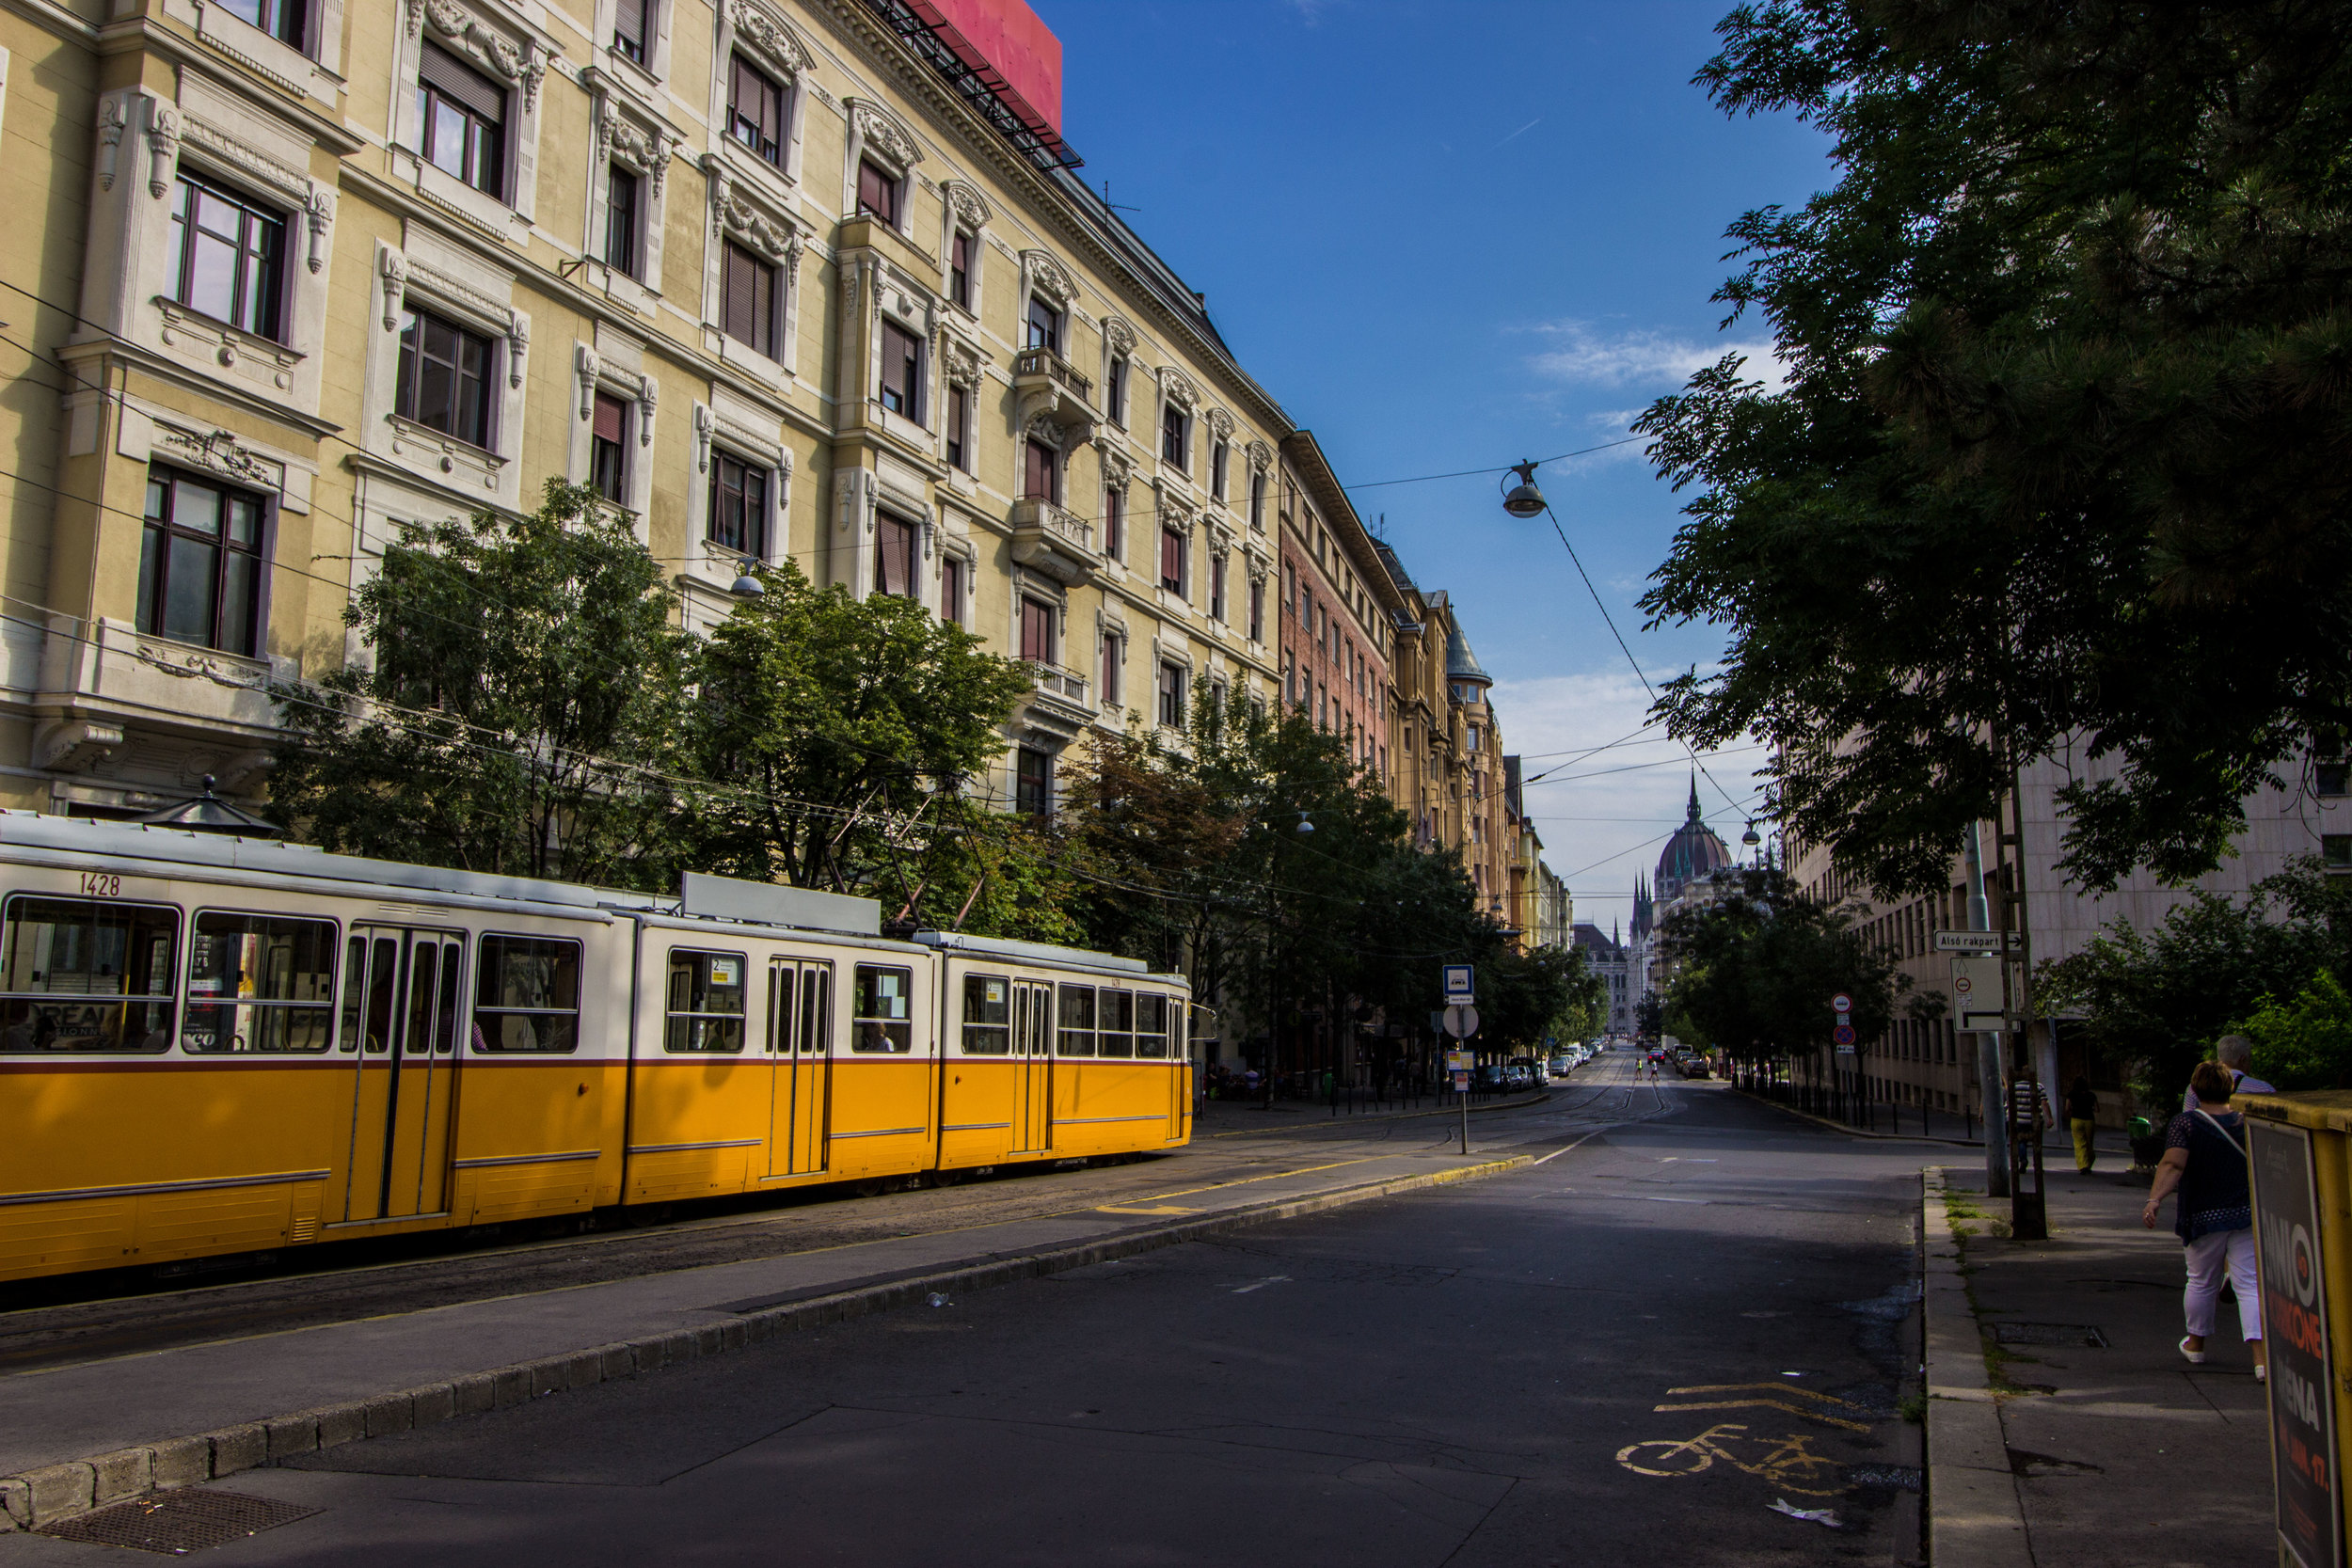 Tram 2 is the most famous of Budapest's 30+ lines. It runs parallel to the Danube, providing stunning panoramic view of the city and stopping along some of Budapest's most well-known landmarks.